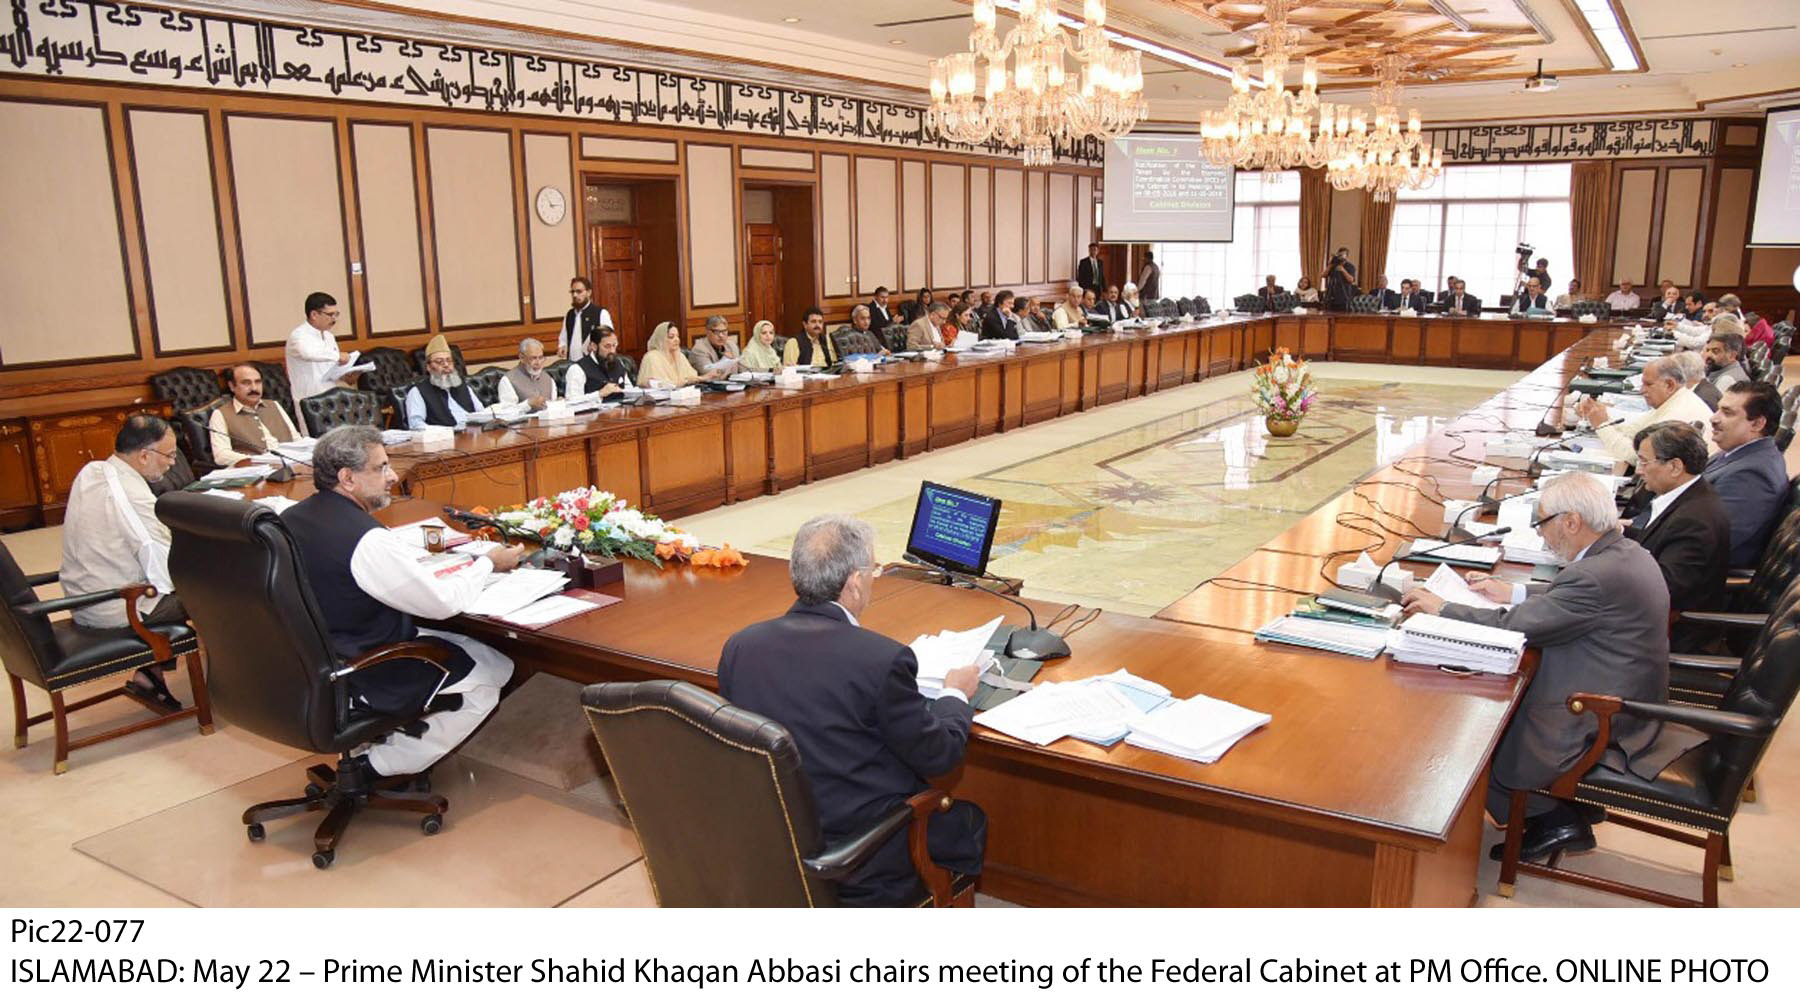 PM Abbasi chairs cabinet meeting PHOTO:ONLINE